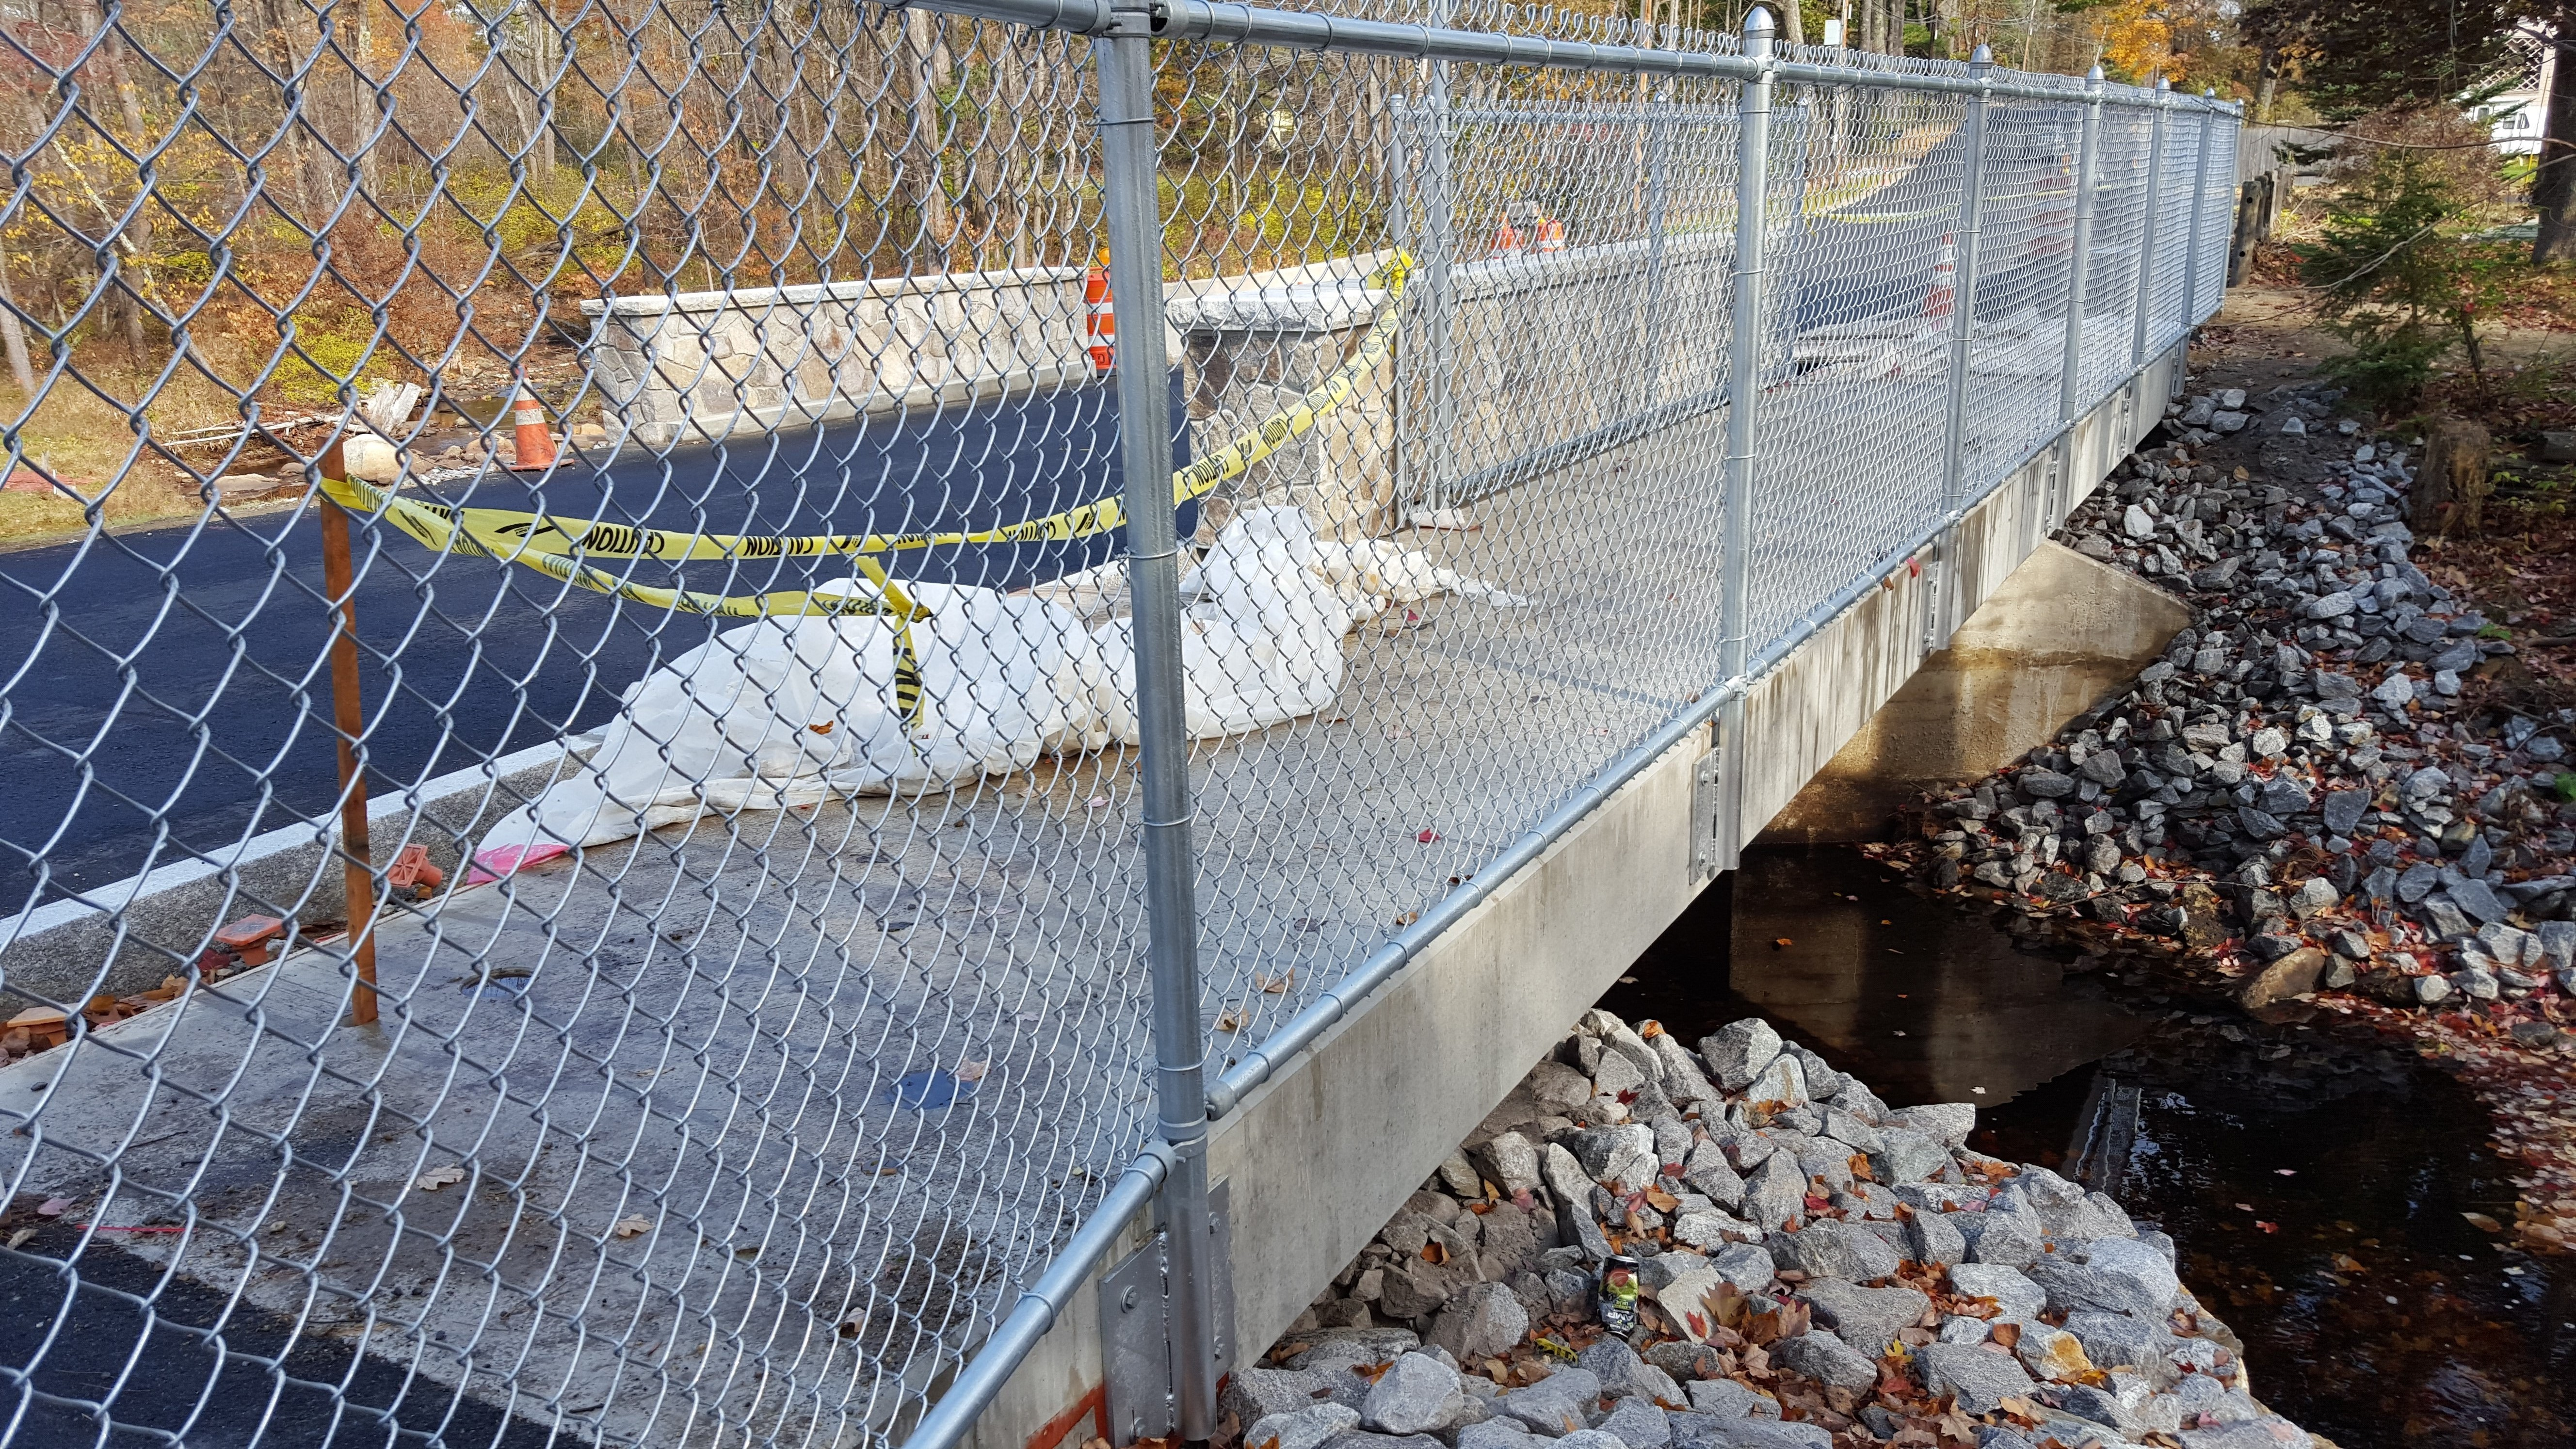 NBR Bridge fencing and curb closeups Oct 22 2015 3